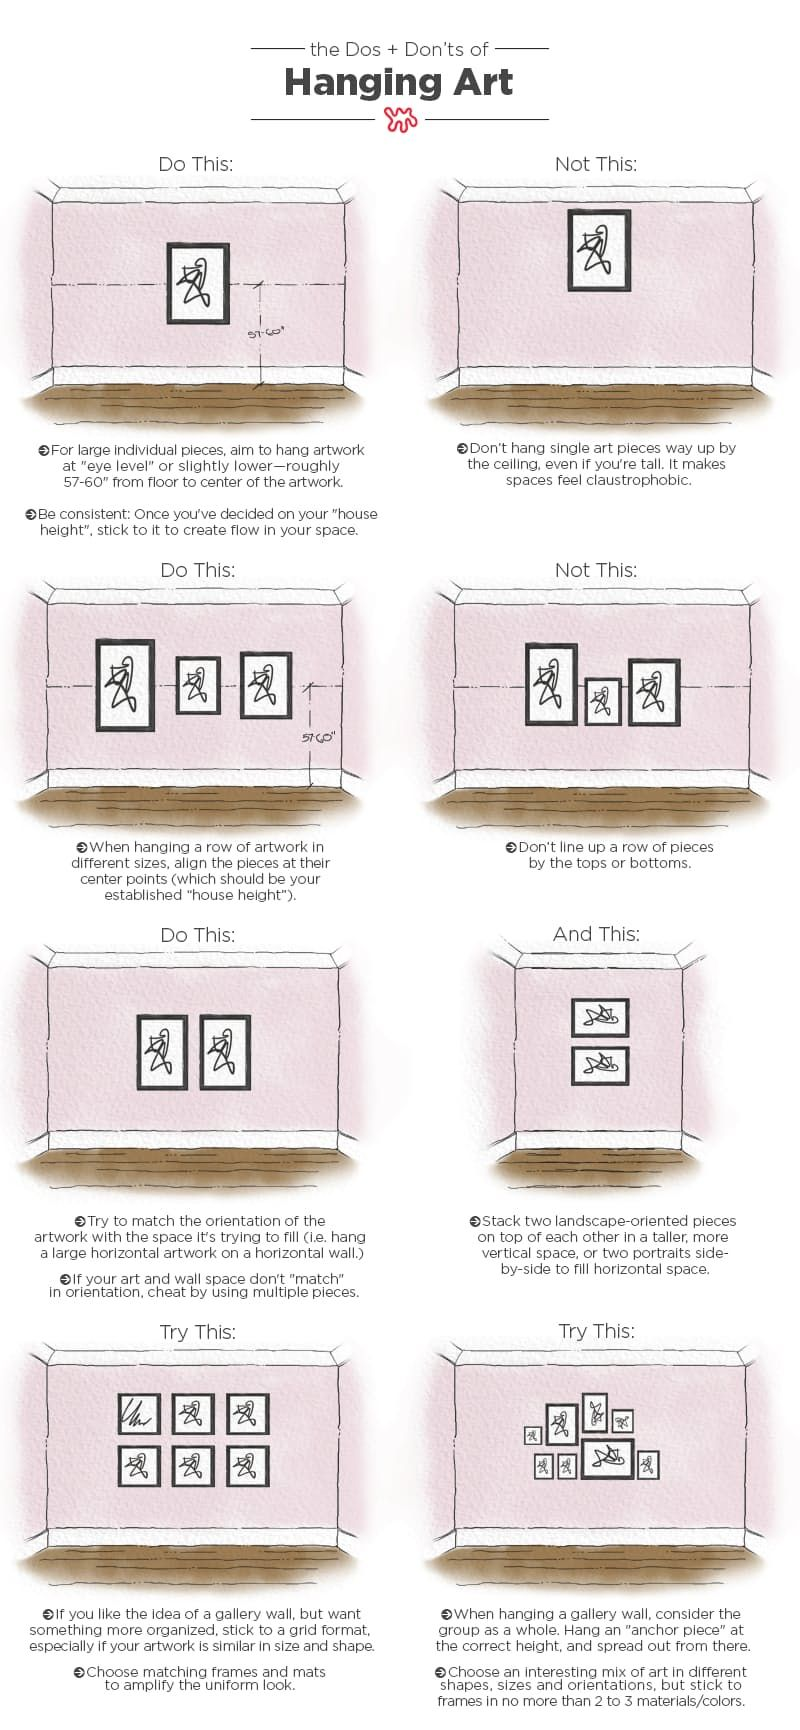 Do You Know the Right Height For Hanging Art? | Raumgestaltung ...